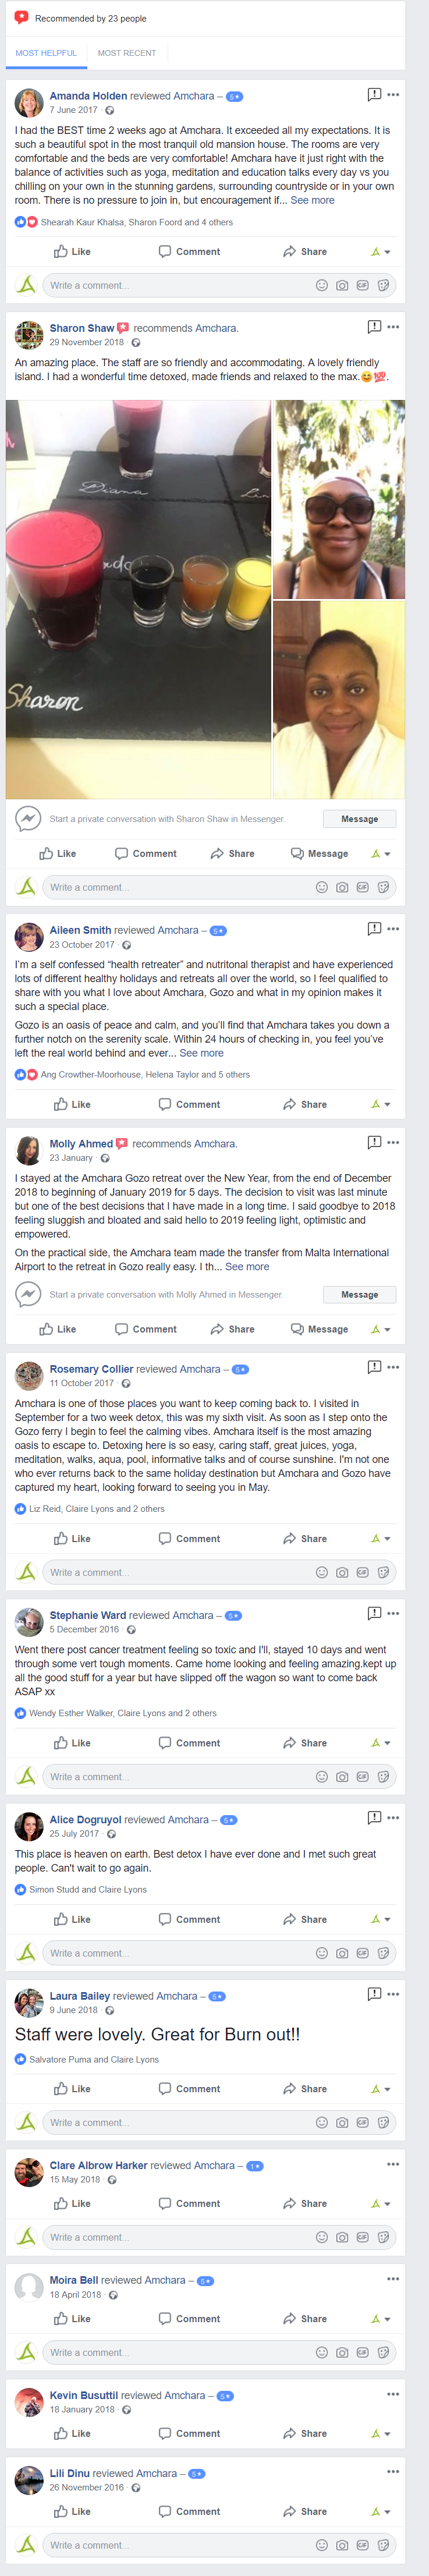 amchara facebook reviews